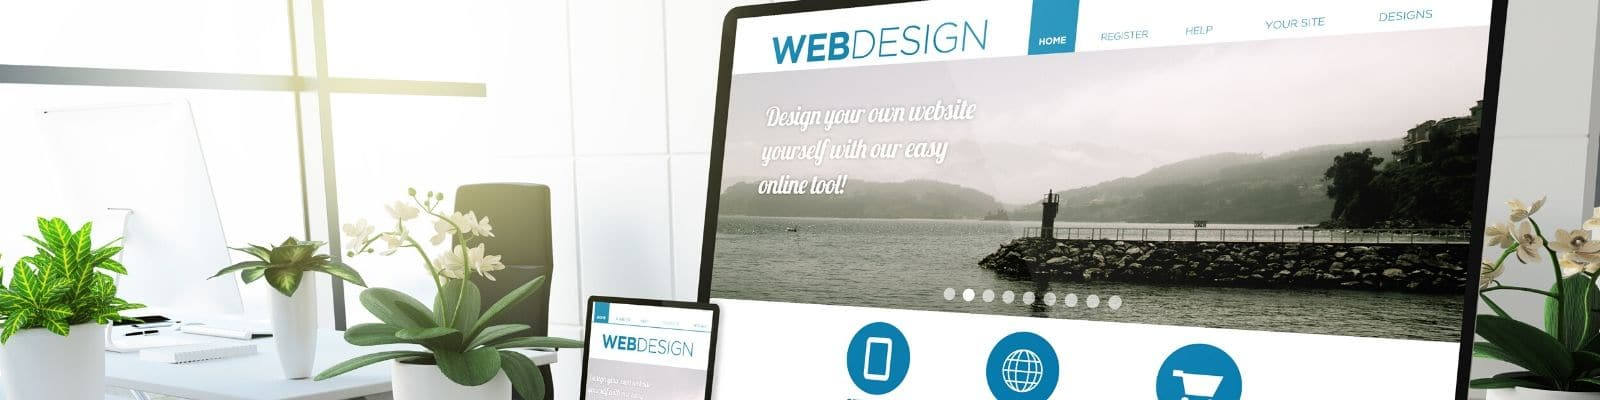 web design trends, website design tips